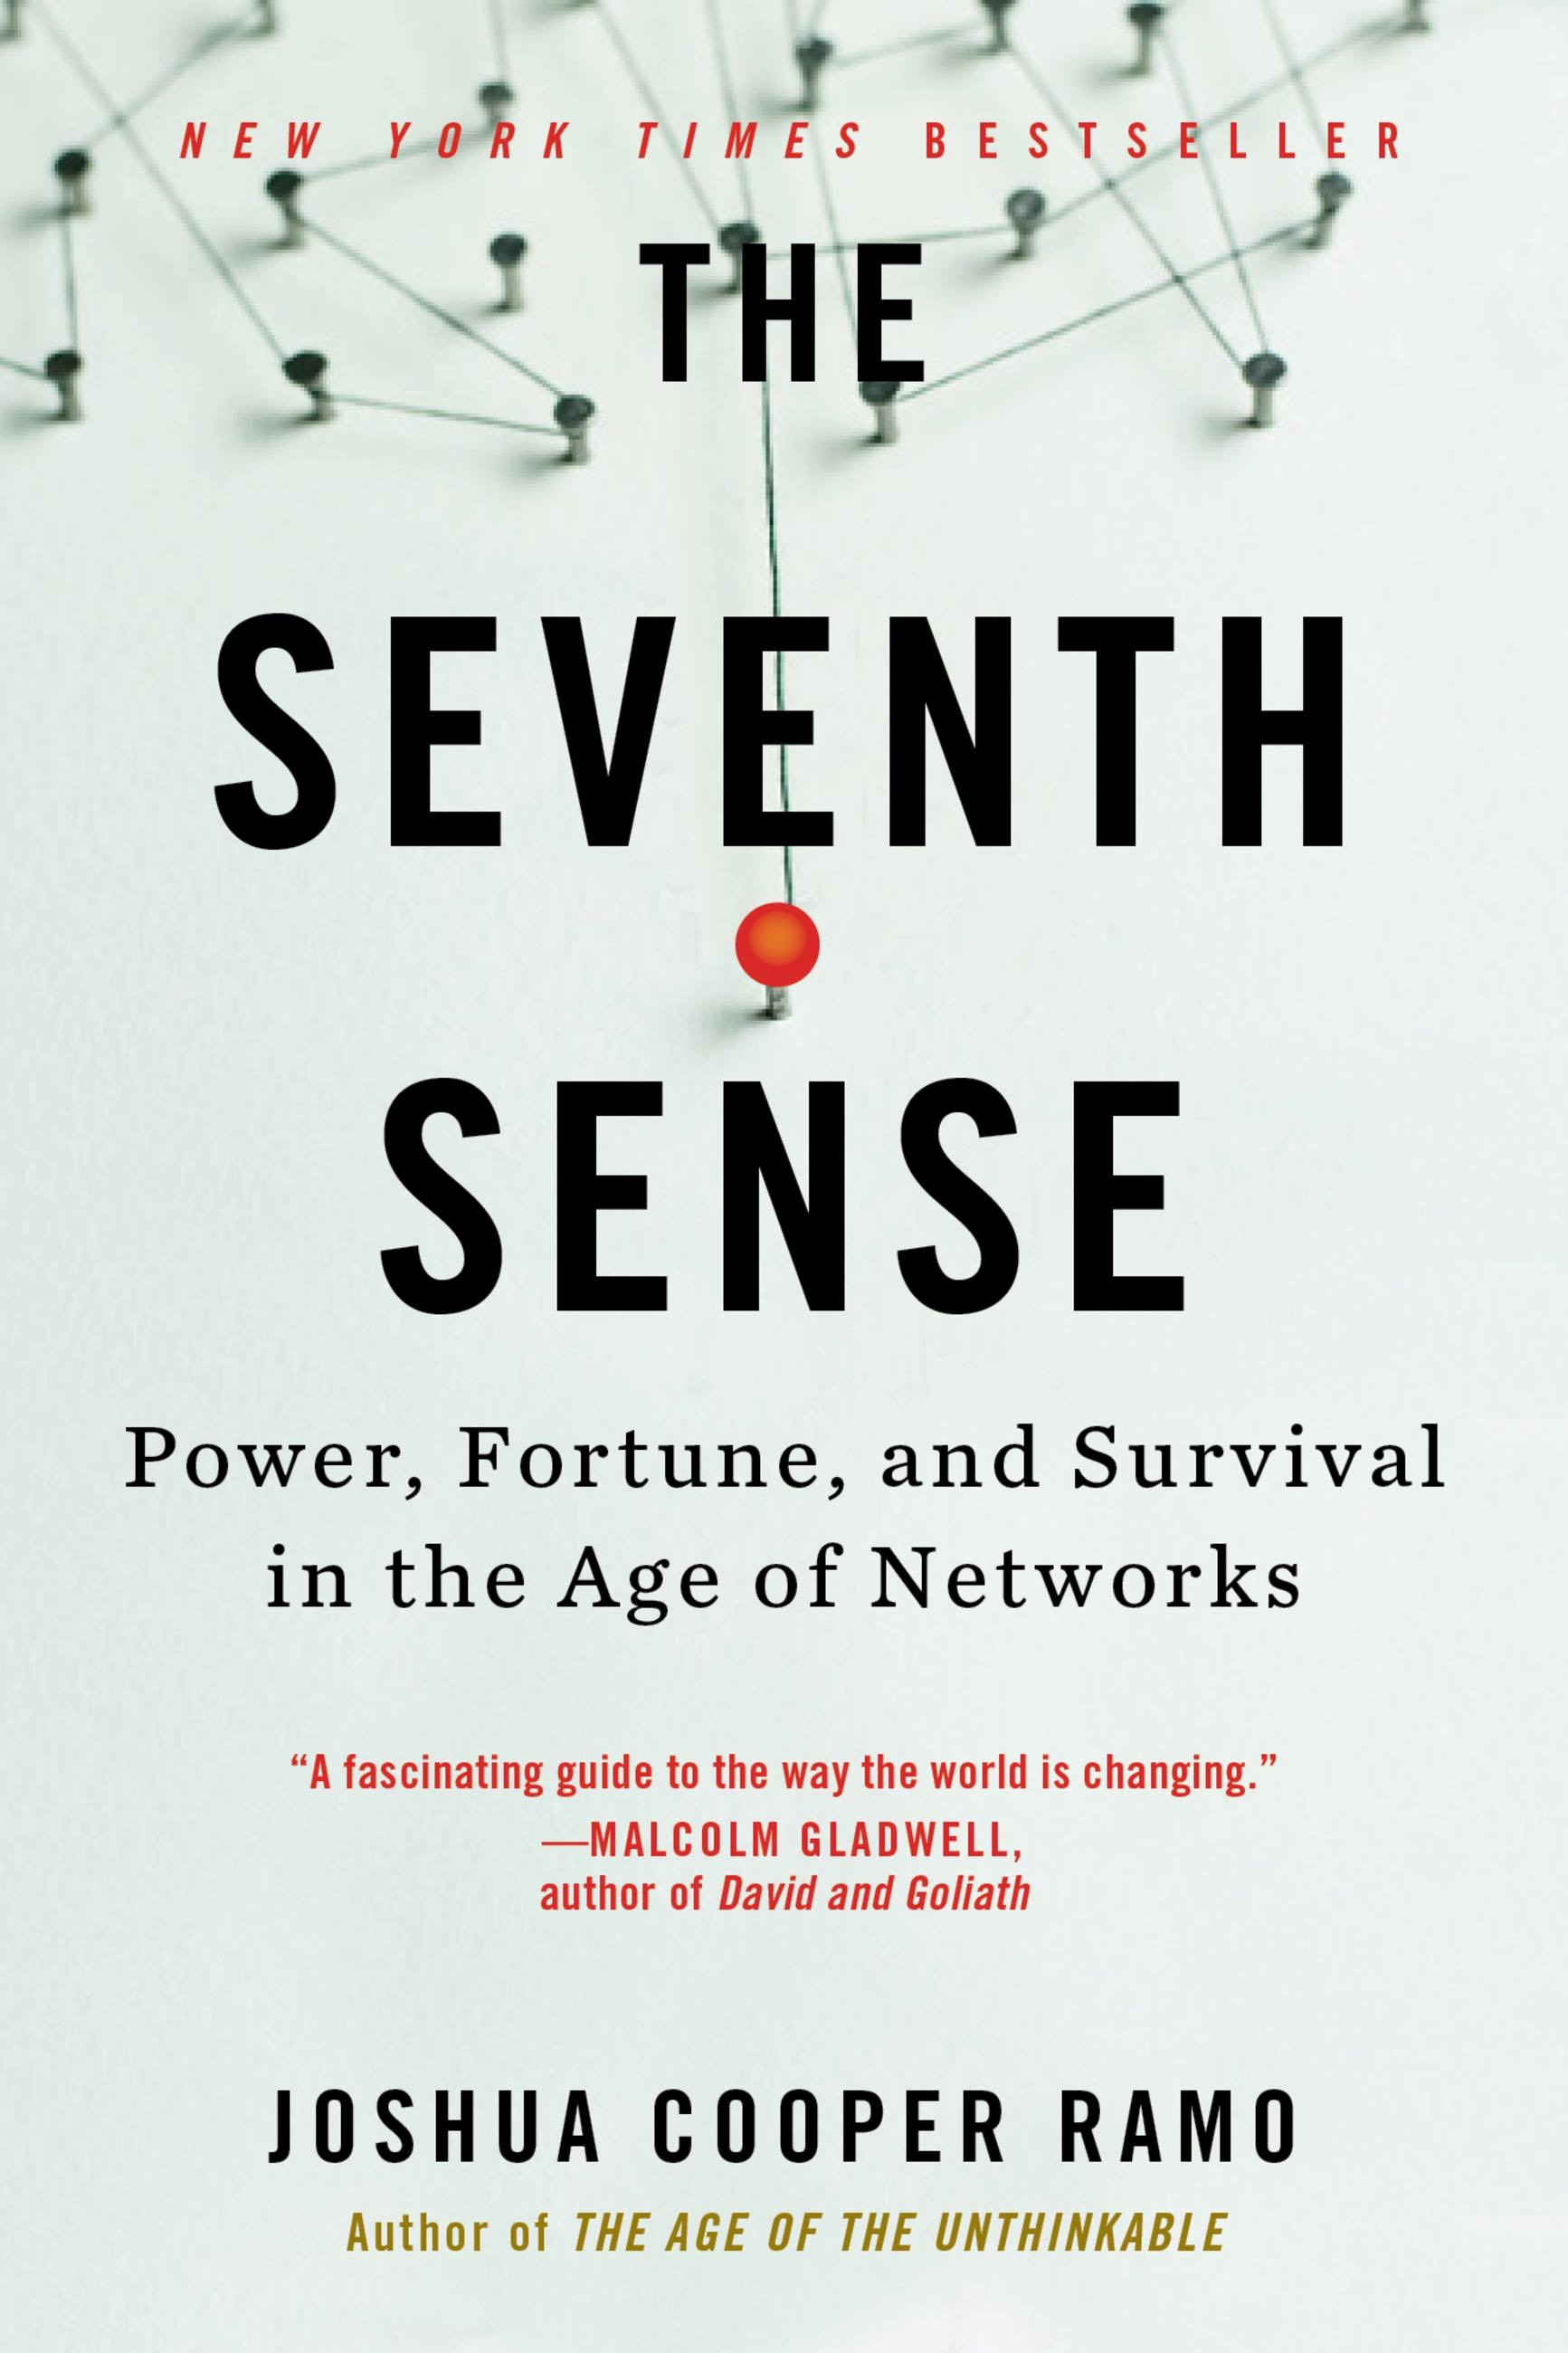 Book Cover of The Seventh Sense